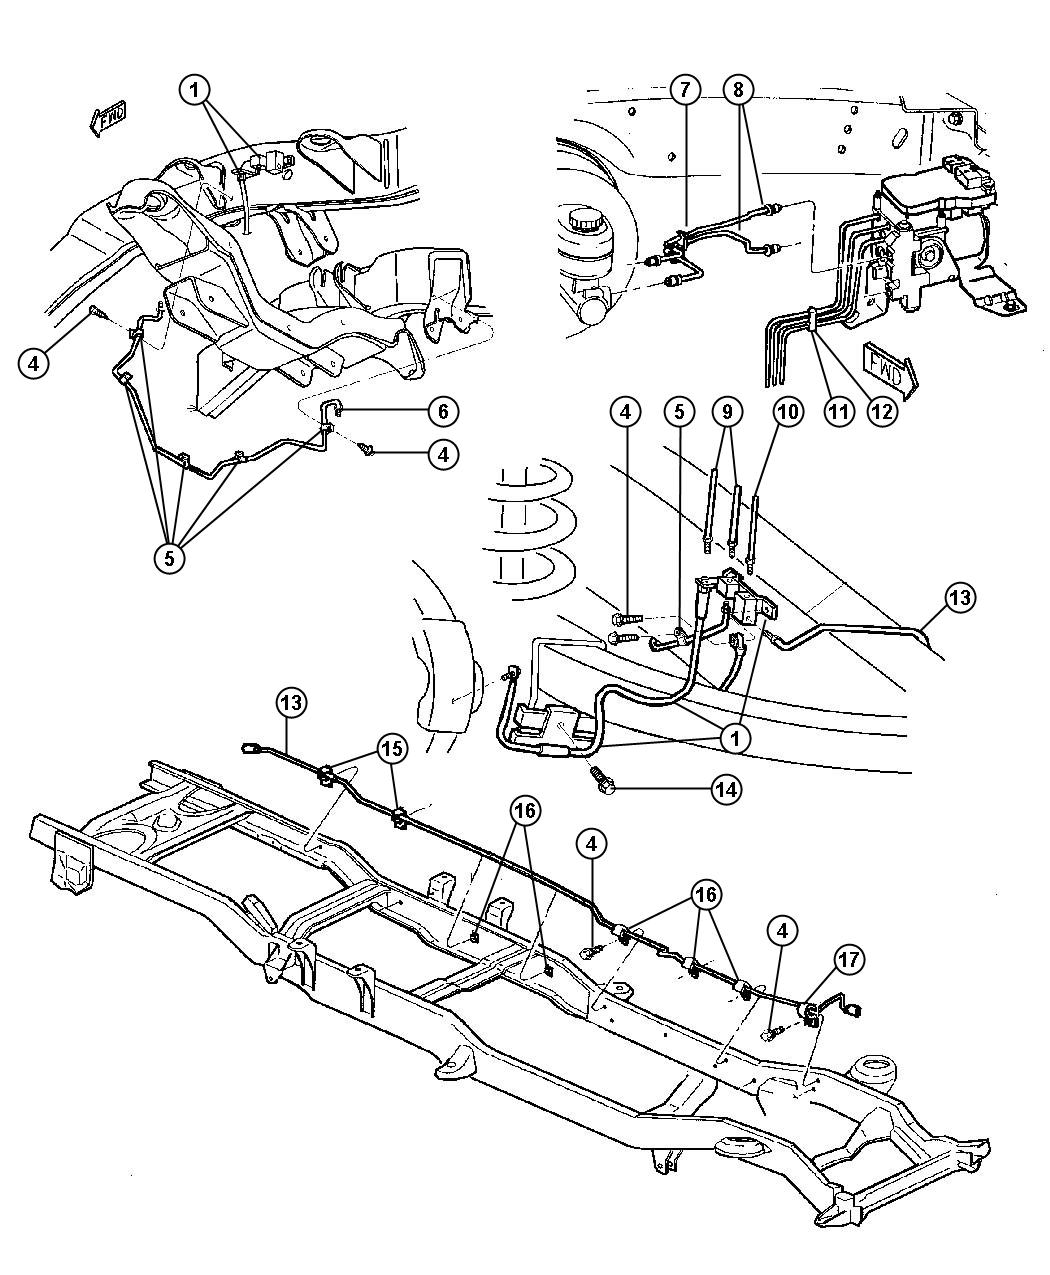 tags: #chevy truck fuel system diagram#2000 chevy silverado fuel line  diagram#2009 chevy silverado fuel line diagram#2004 chevy silverado fuel  lines#chevy